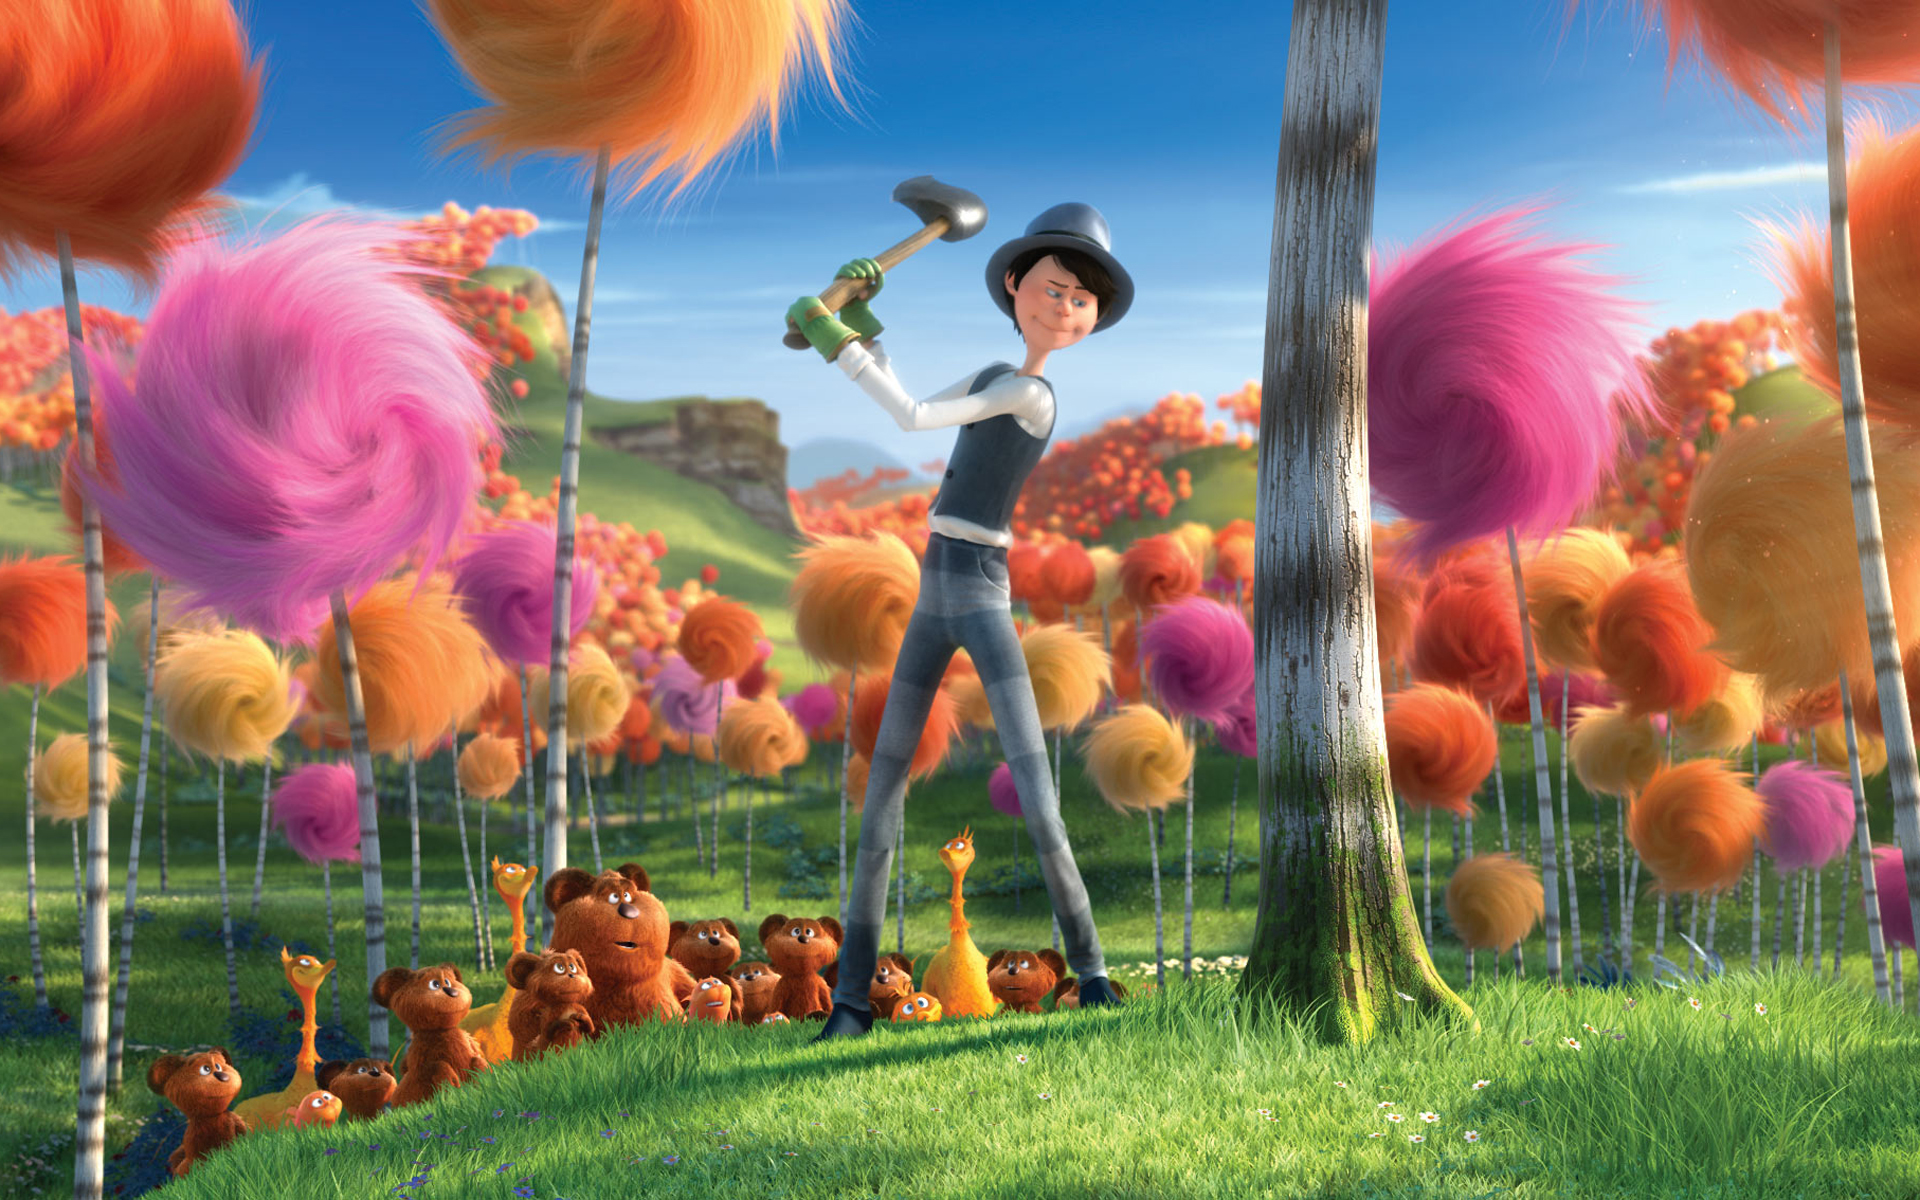 Cute Crisp Wallpapers Movie Review Dr Seuss The Lorax A Sugary Piece Of